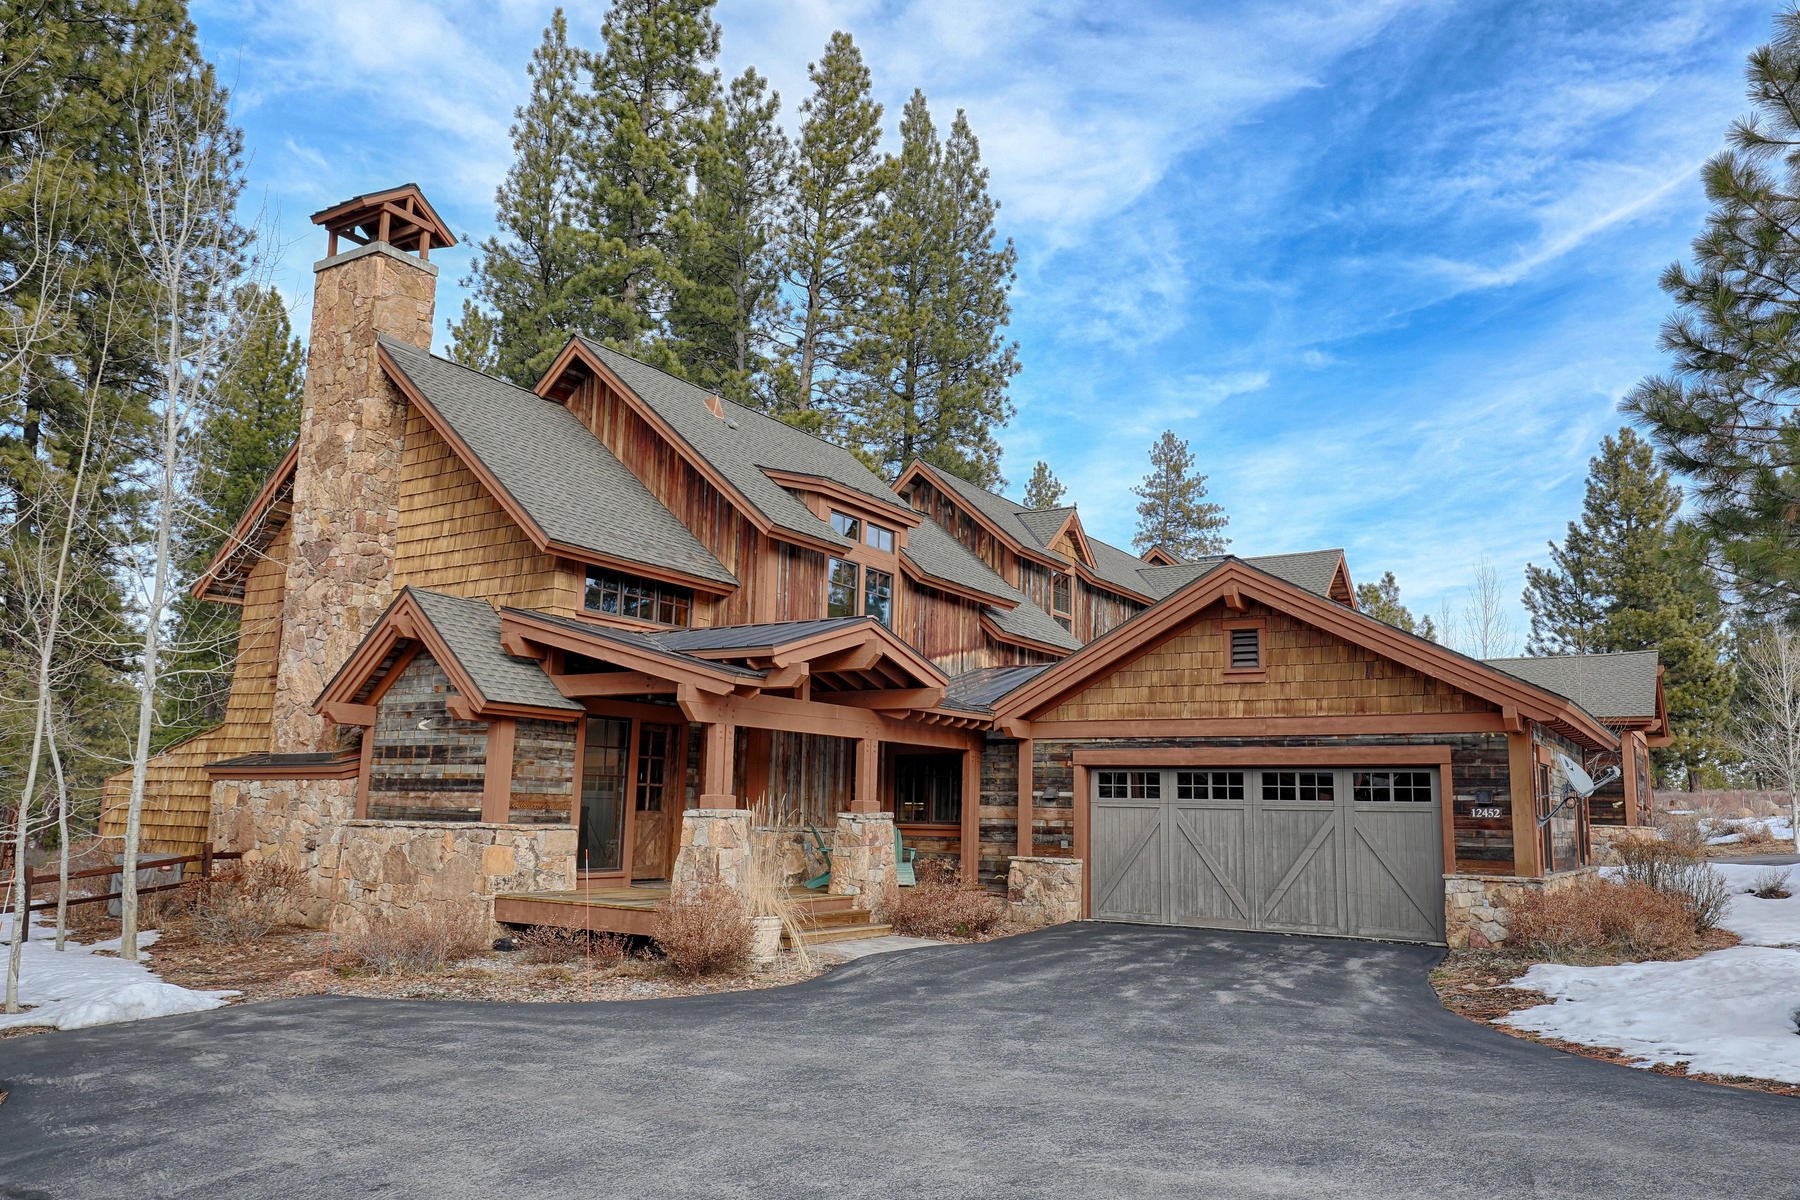 townhouses for Active at 12452 Villa Court Truckee CA 96161 12452 Villa Court # 5 Truckee, California 96161 United States